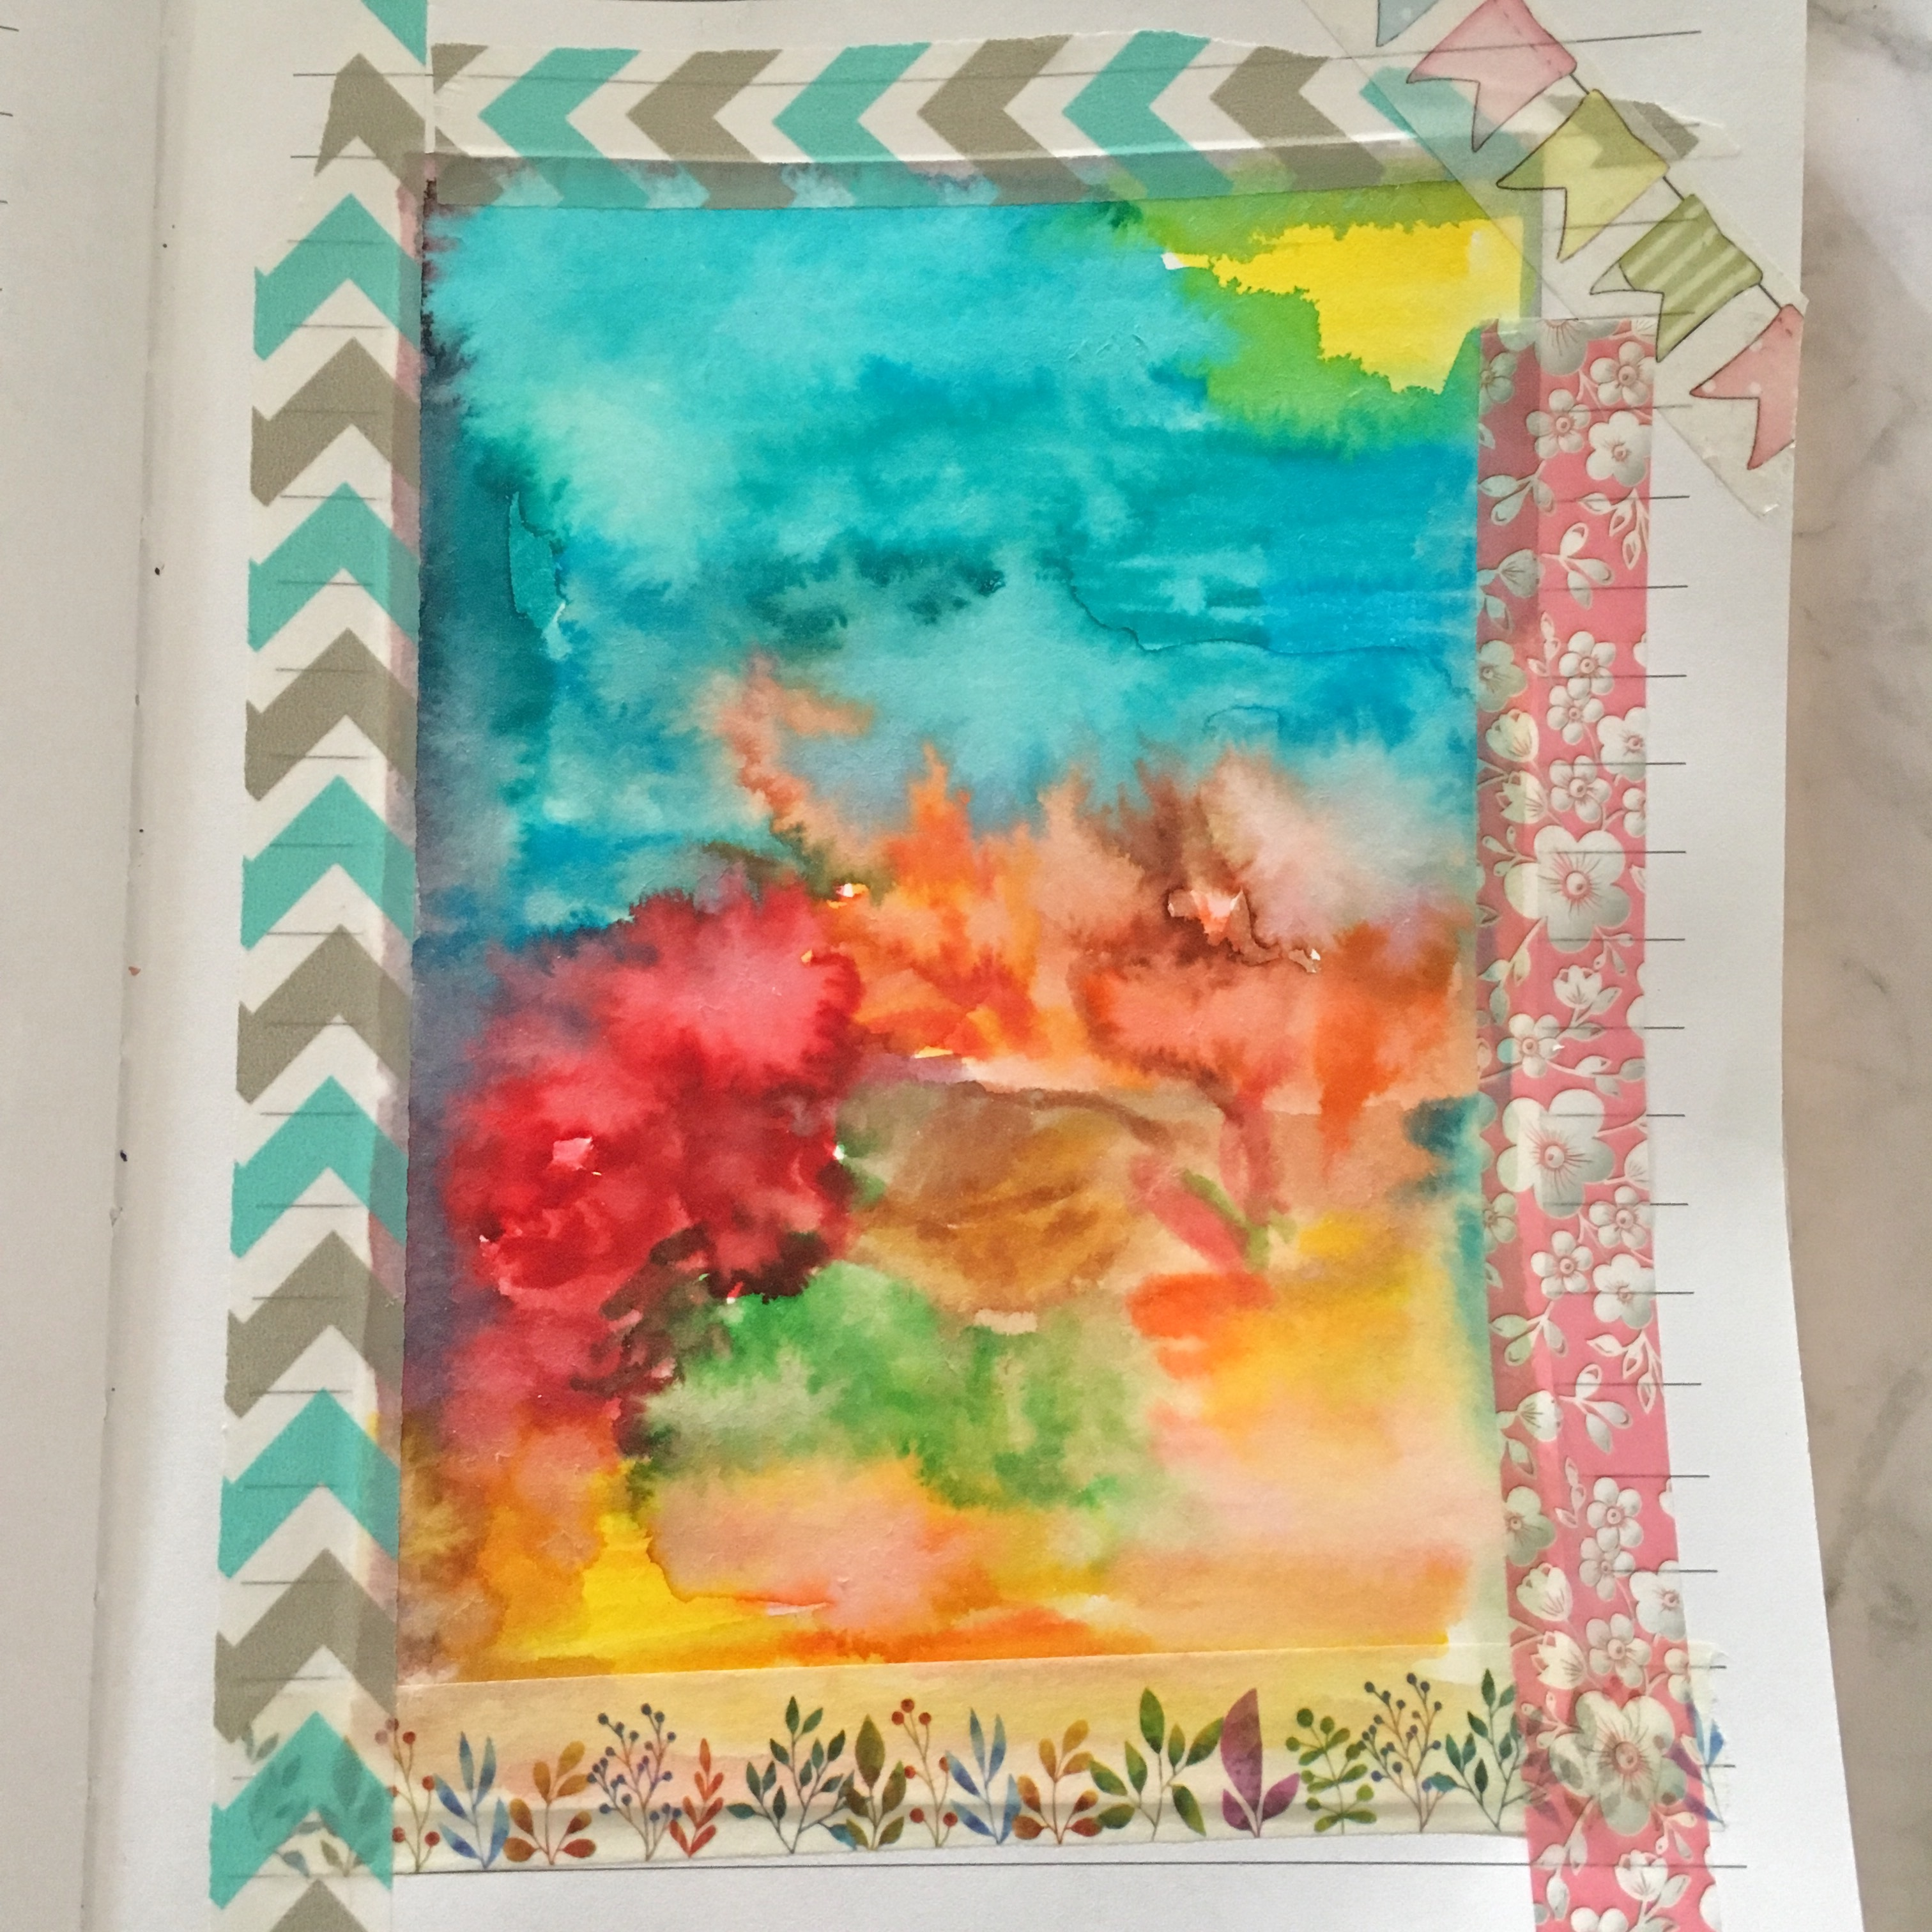 watercolour drawing of sea, sun, Pelargonium blossoms and leaves - the sketch from the previous picture, treated with water. Some washi tape in blue and pink with flowers to secure the edges